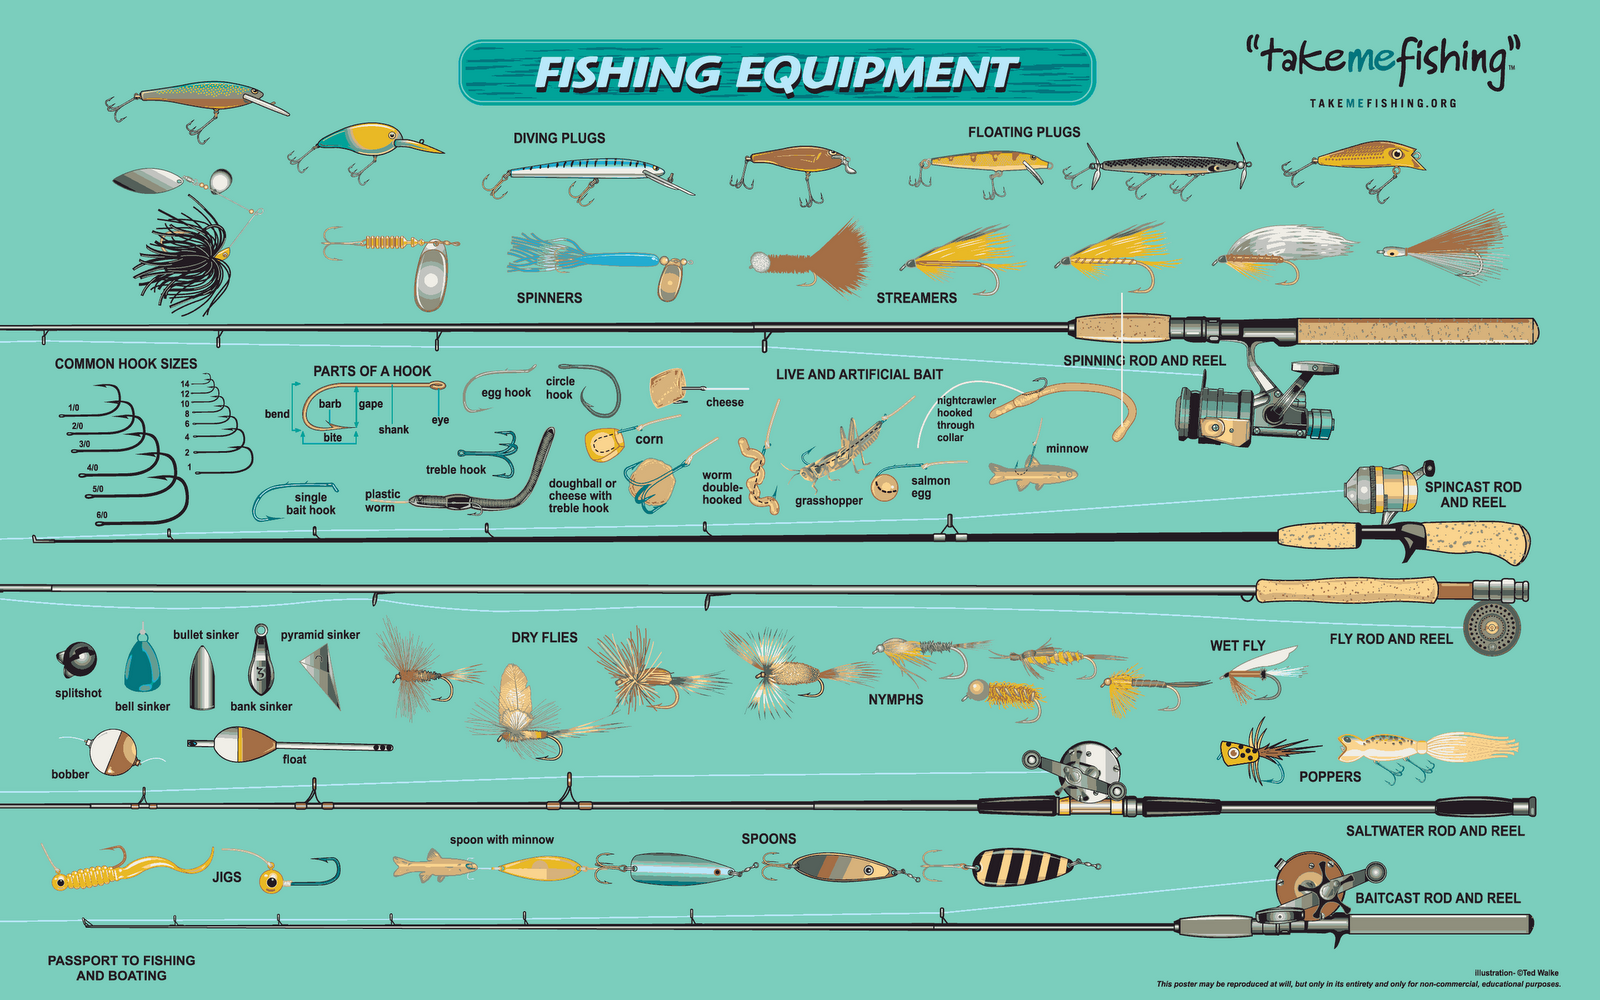 17 best images about fishing gear kits on pinterest | compact, Fishing Rod